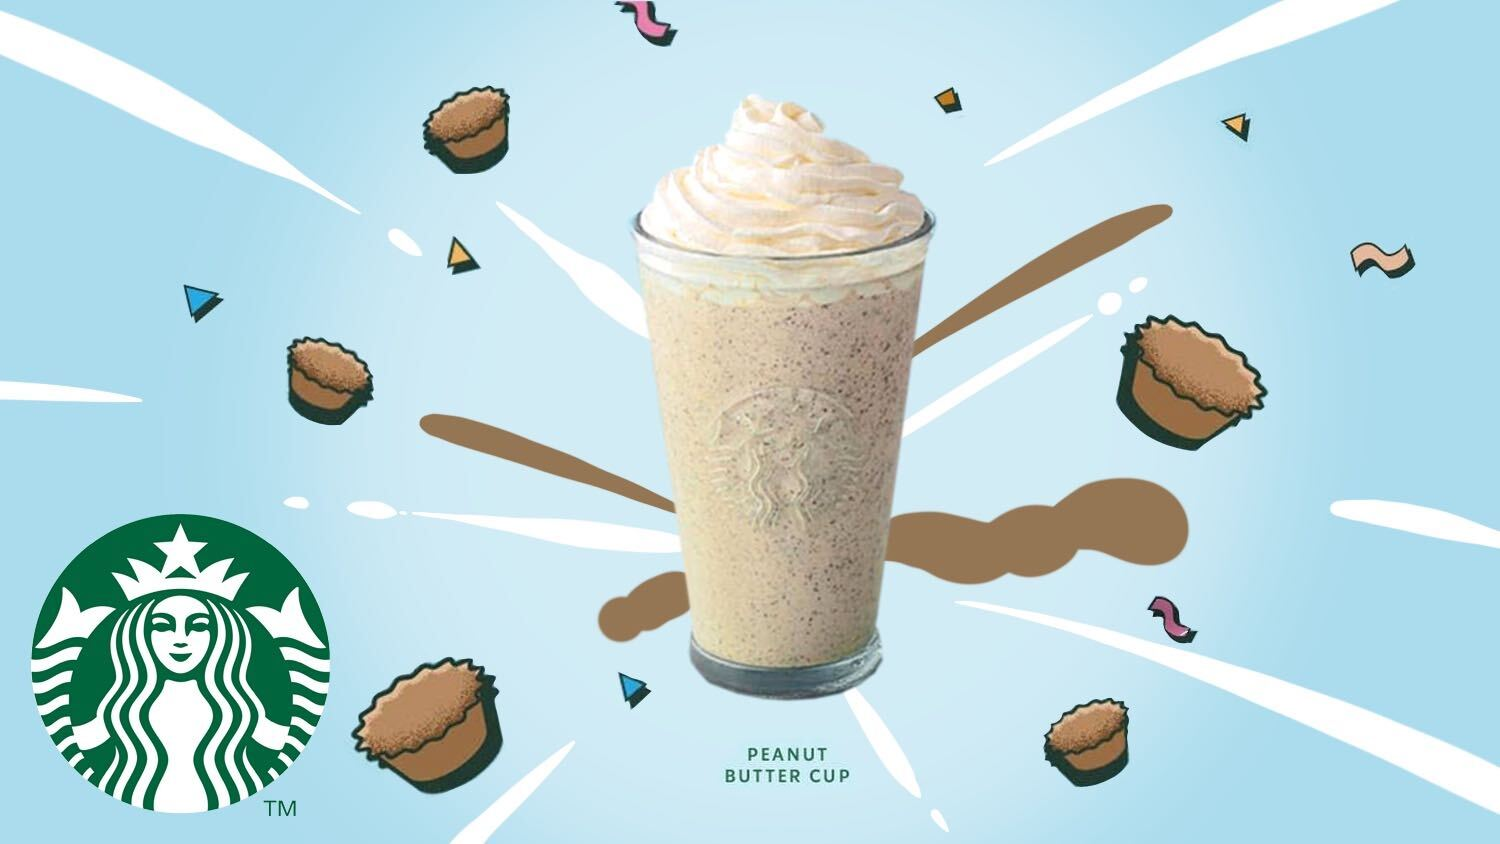 Starbucks Just Launched Vegan-Friendly Peanut Butter Frappuccinos